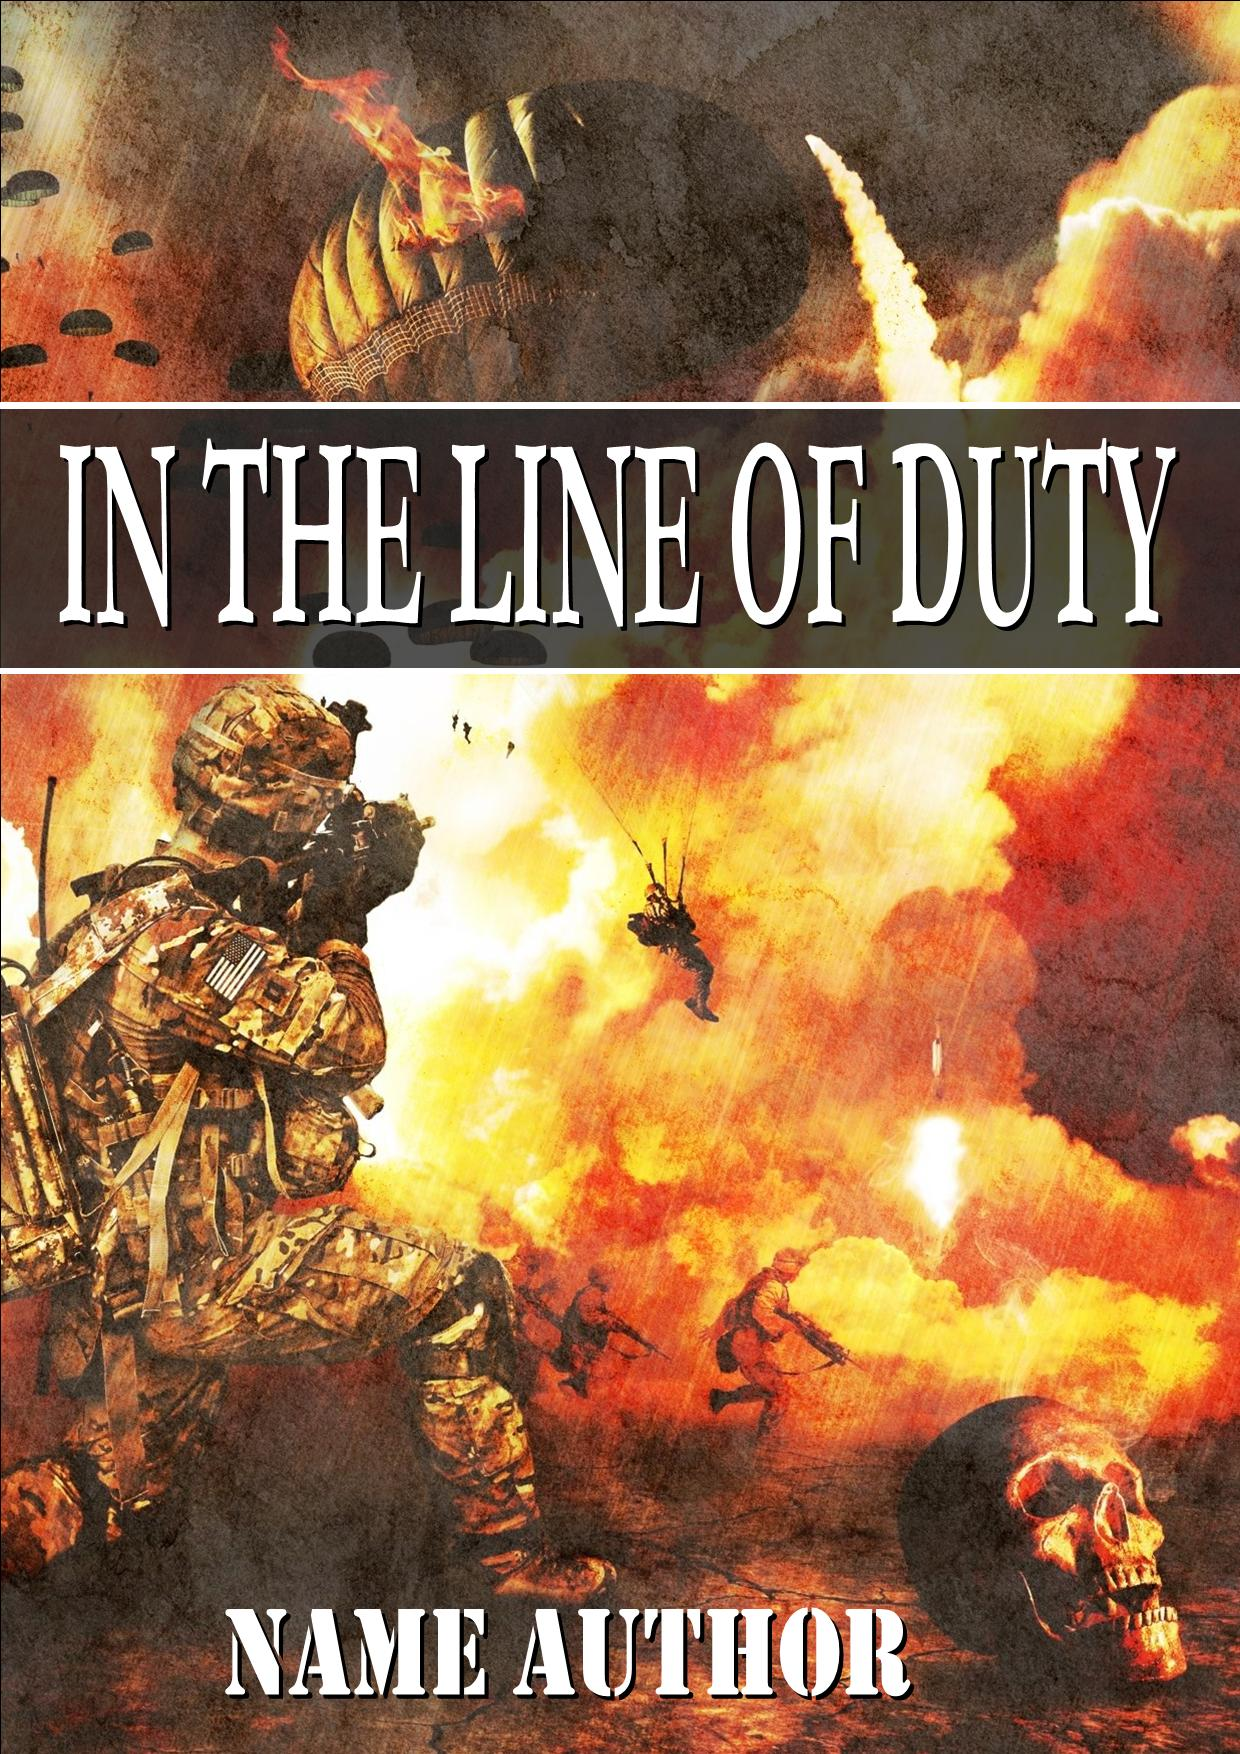 INTHELINEOFDUTY